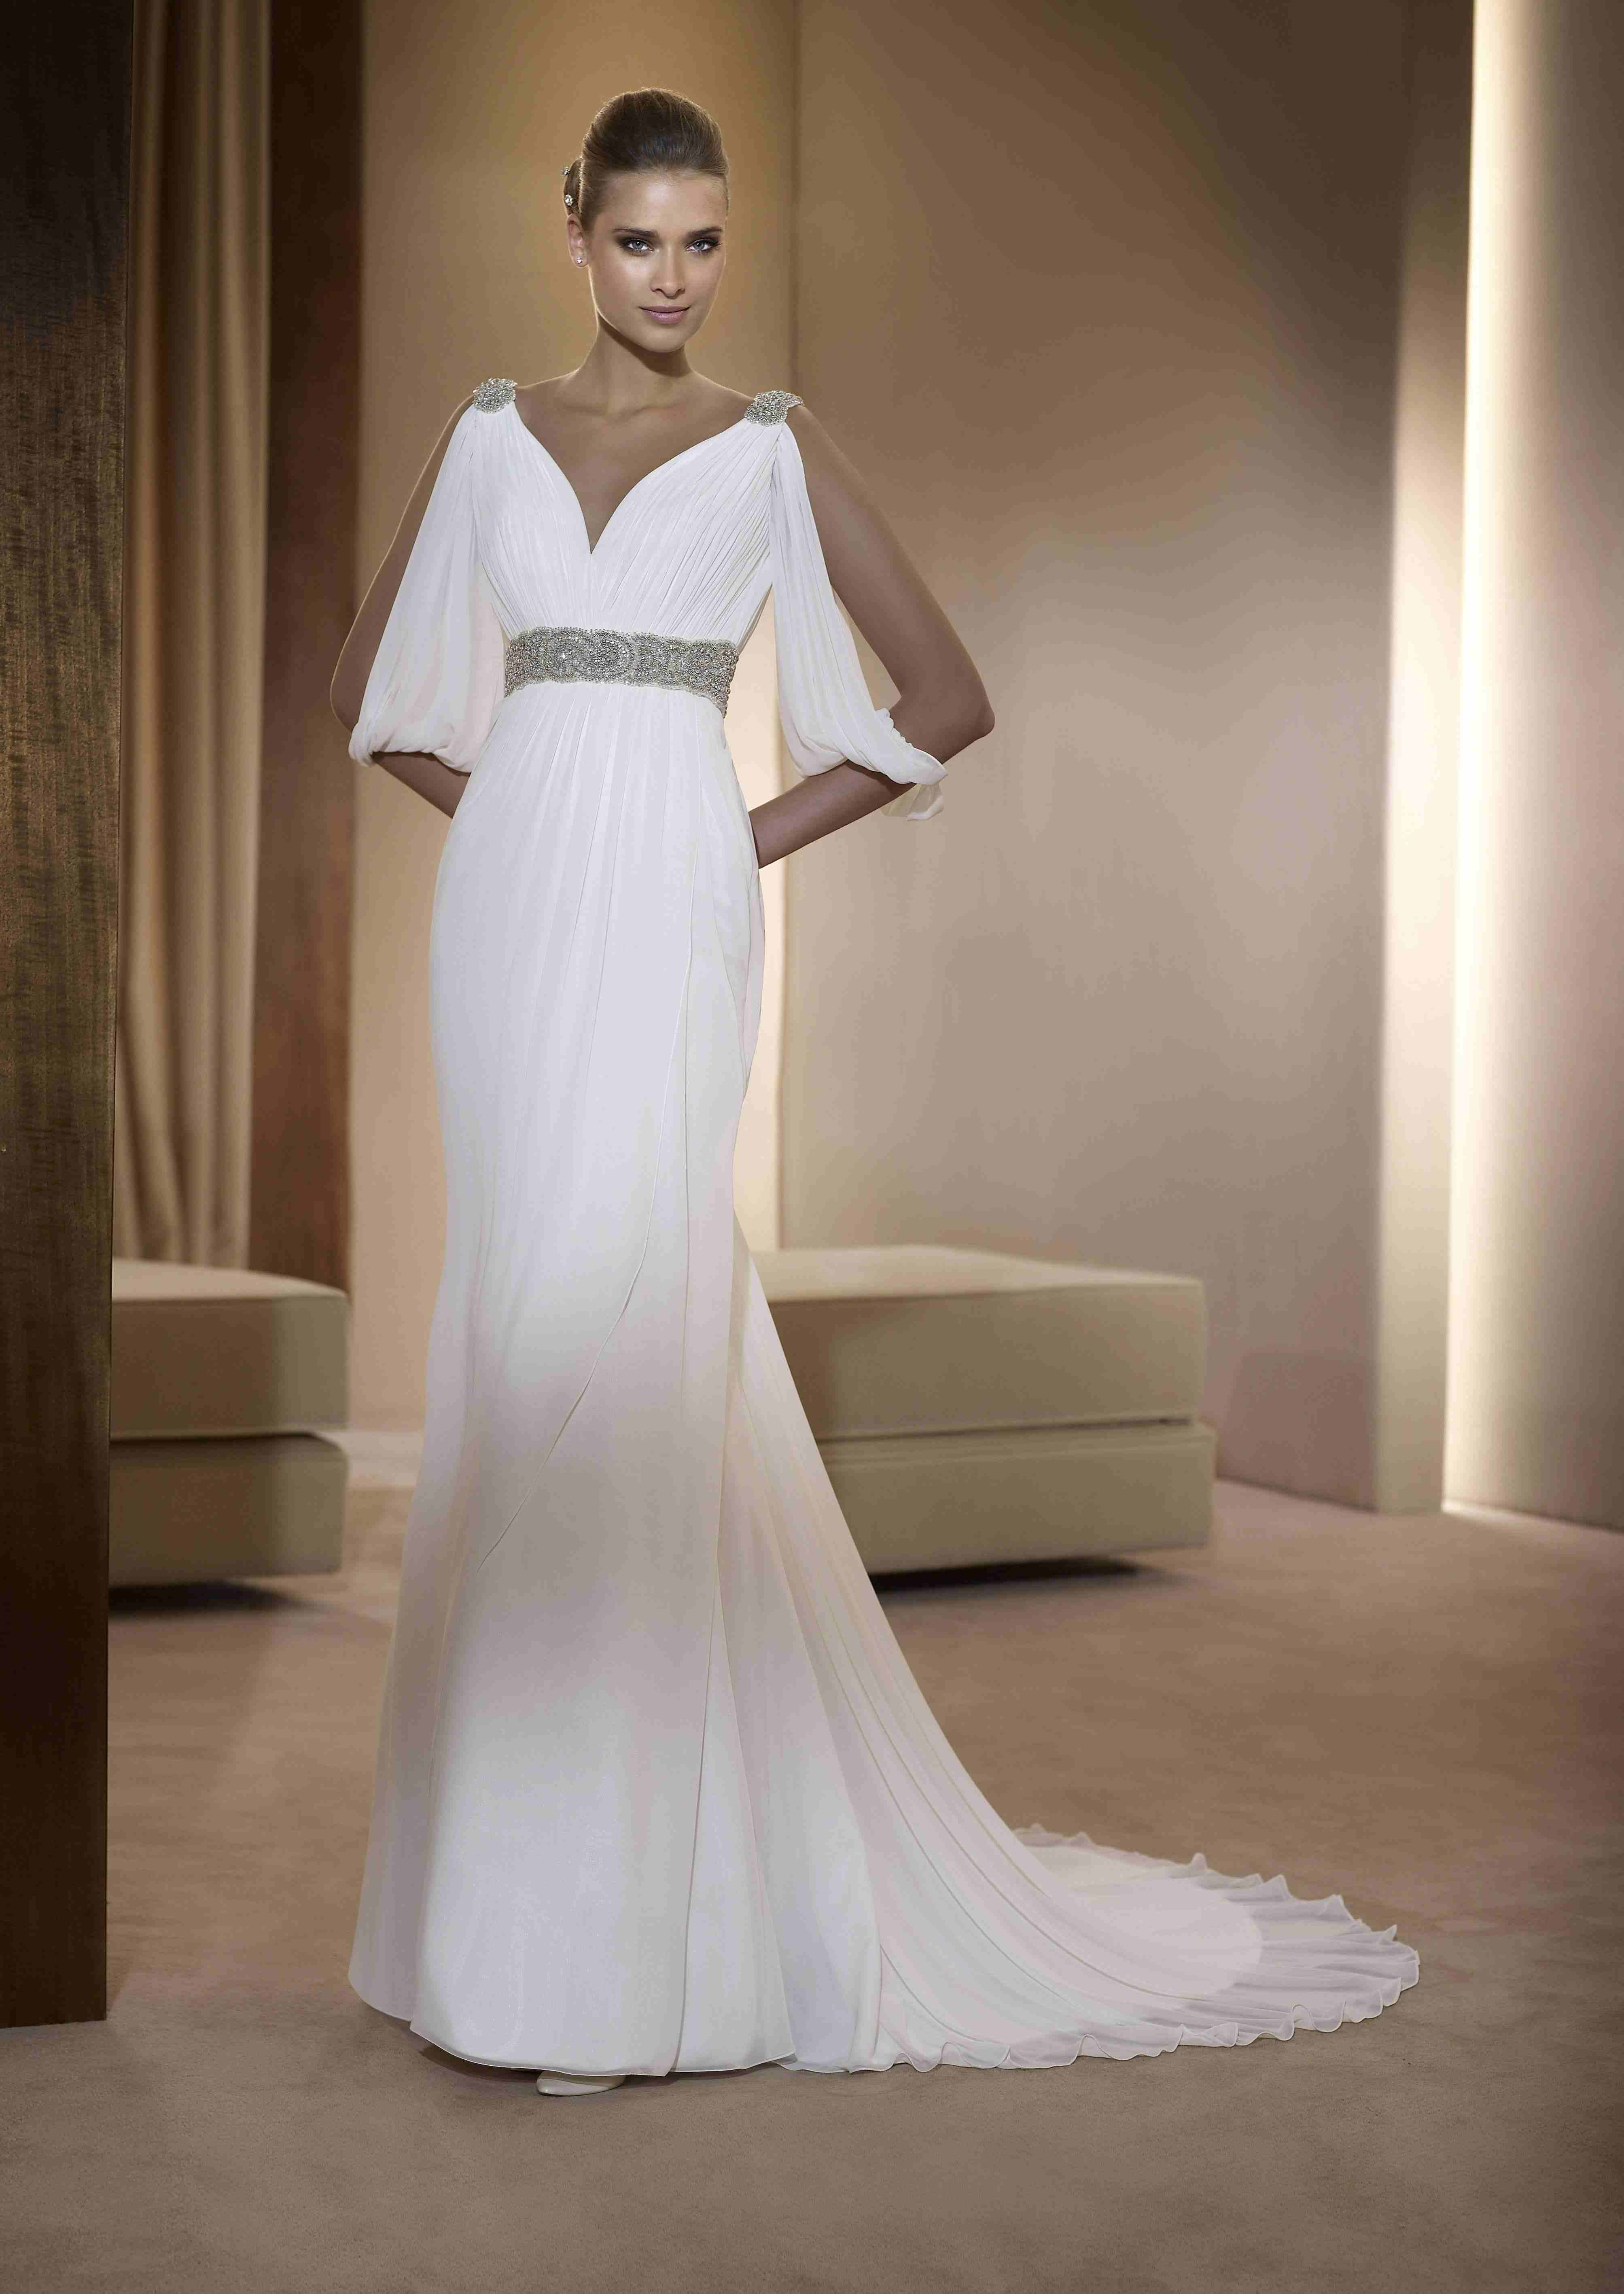 grecian style wedding dress This is the perfect gown for a Star Wars themed wedding gown by Pronovias in a